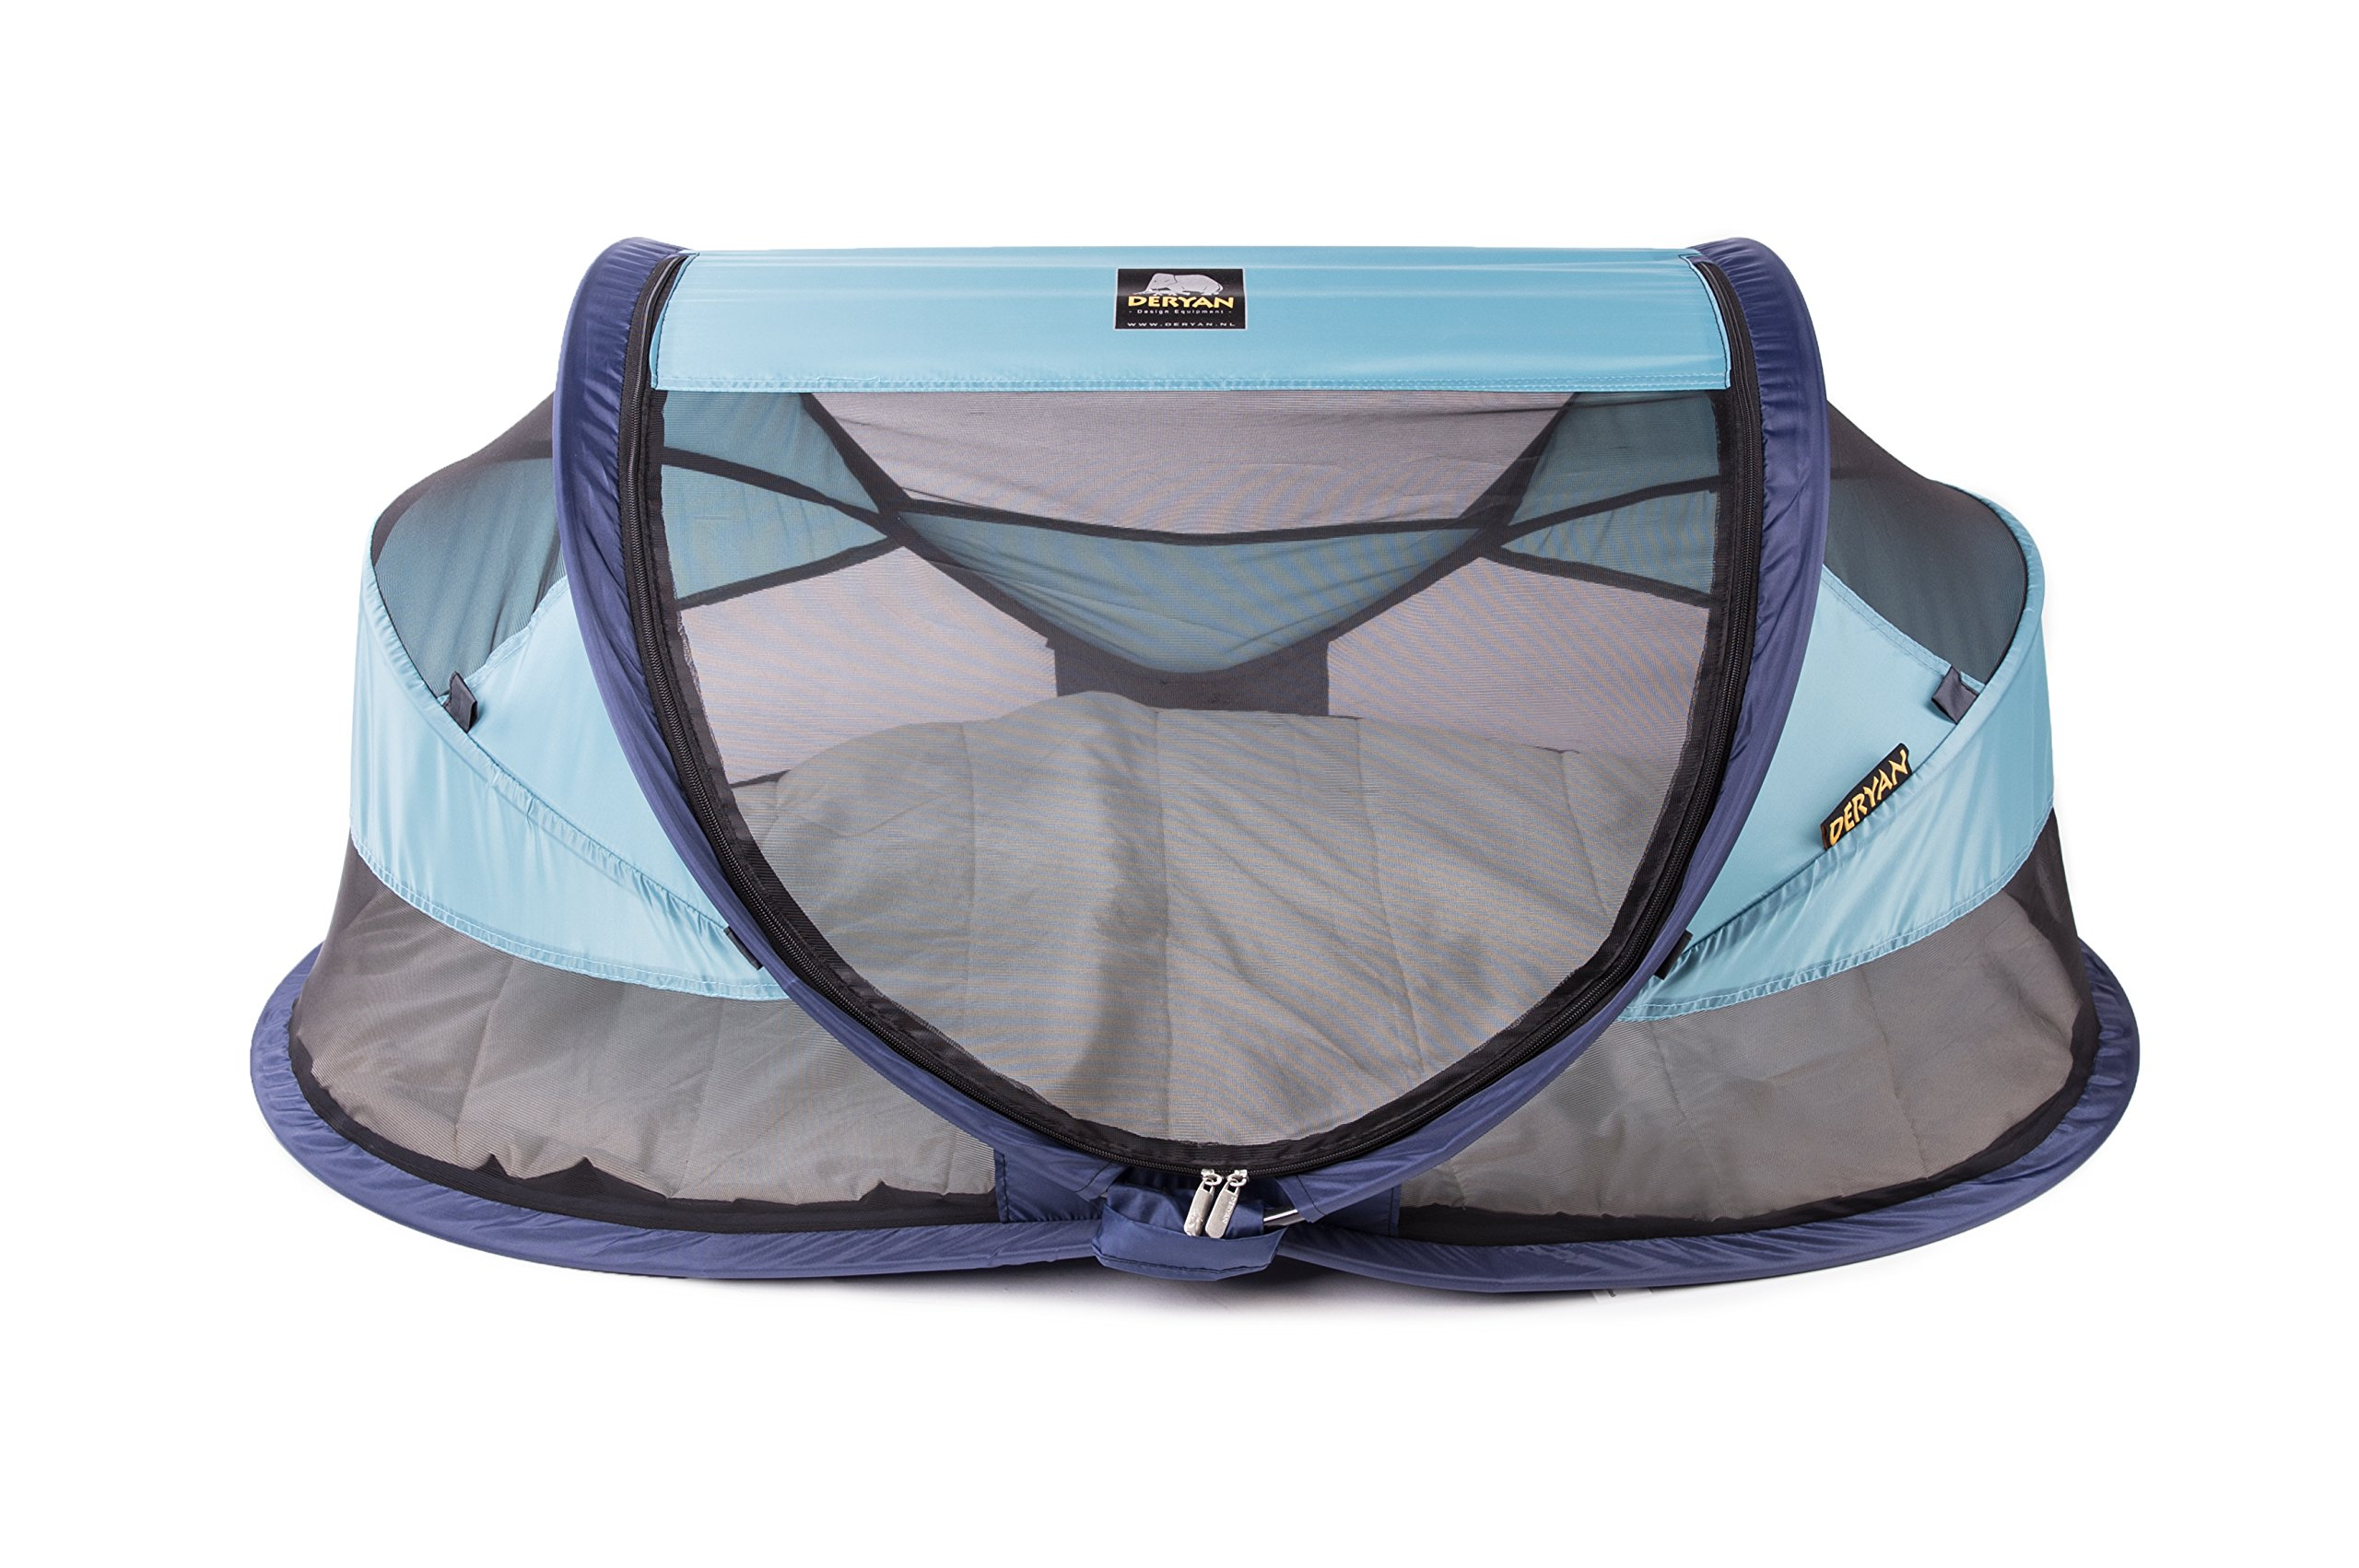 Travel Cot Baby Luxe (Ocean) Deryan 50% UV Protection and flame retardant fabric Setup in 2 seconds and a anti-musquito net  1